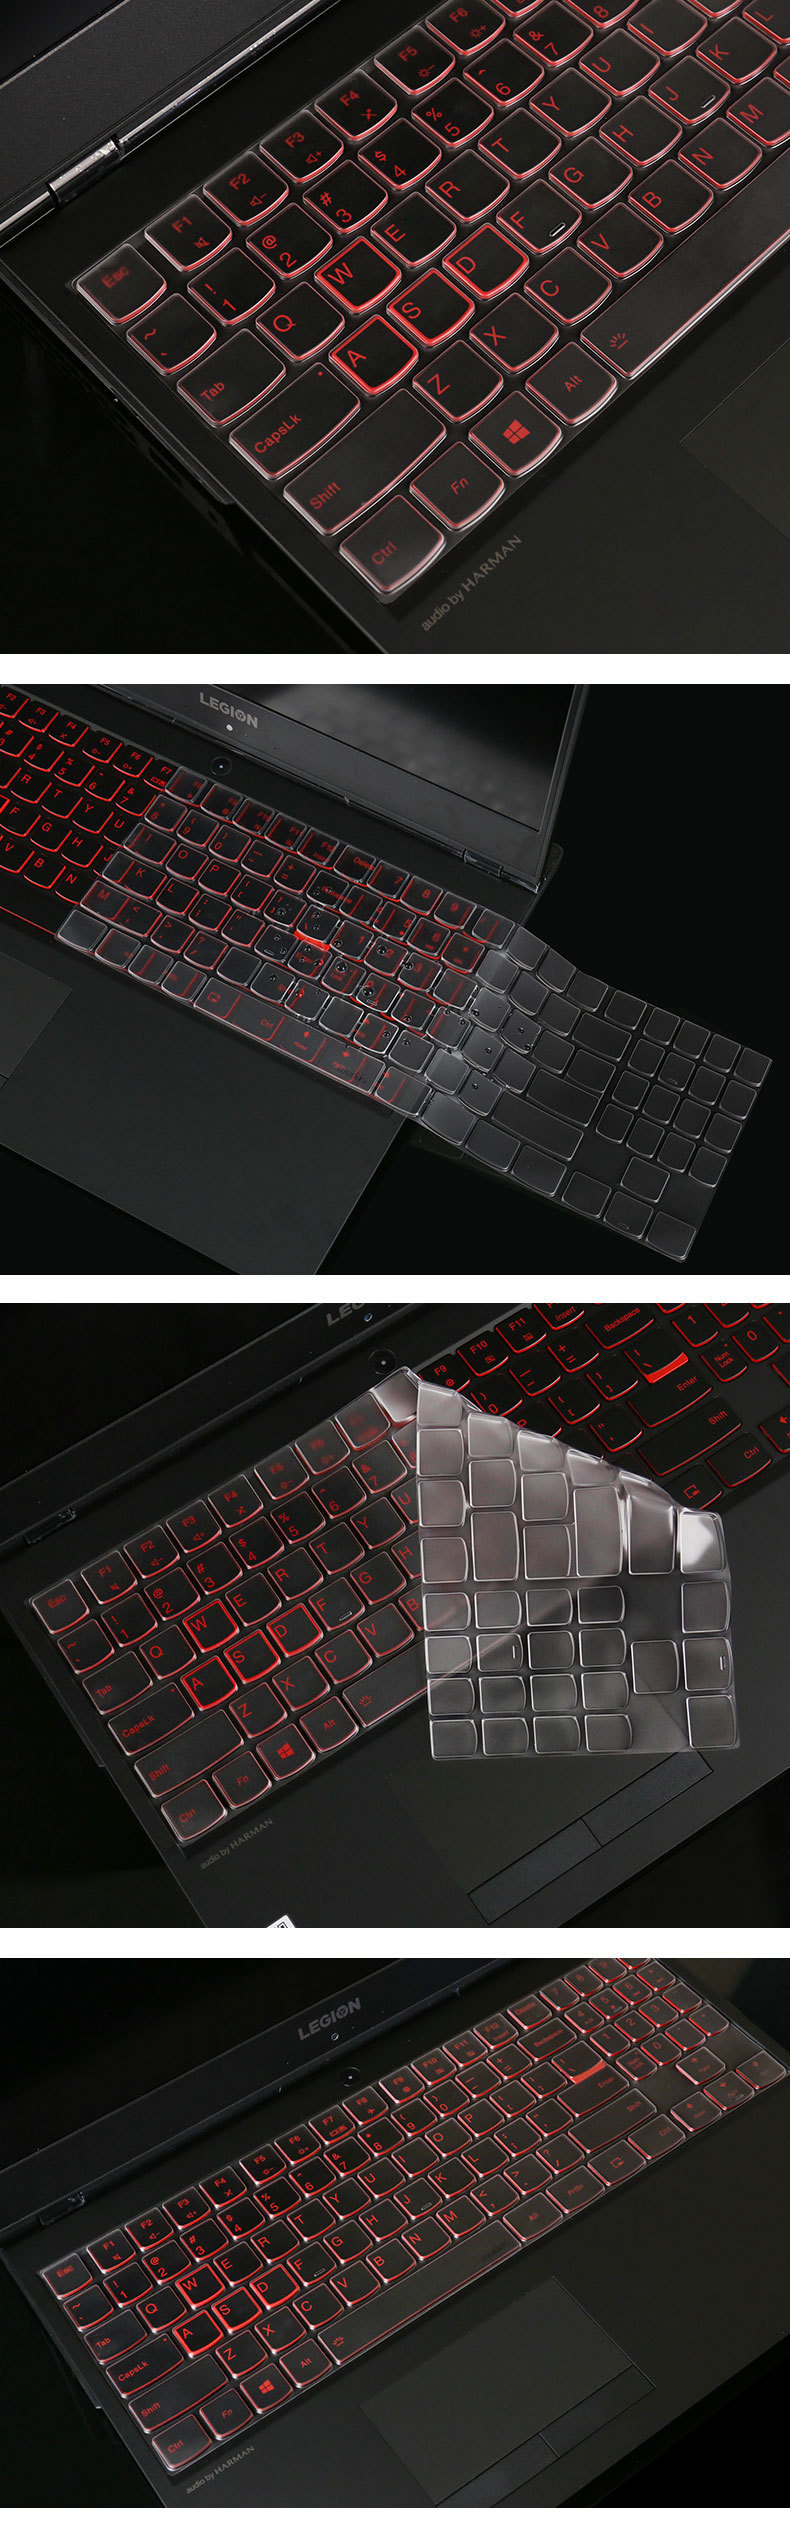 TPU Invisible Keyboard Cover Protector Film for Lenovo Savior Y7000 15.6 Notebook Keyboard Wetarproof Dustproof Membrane.-Clear